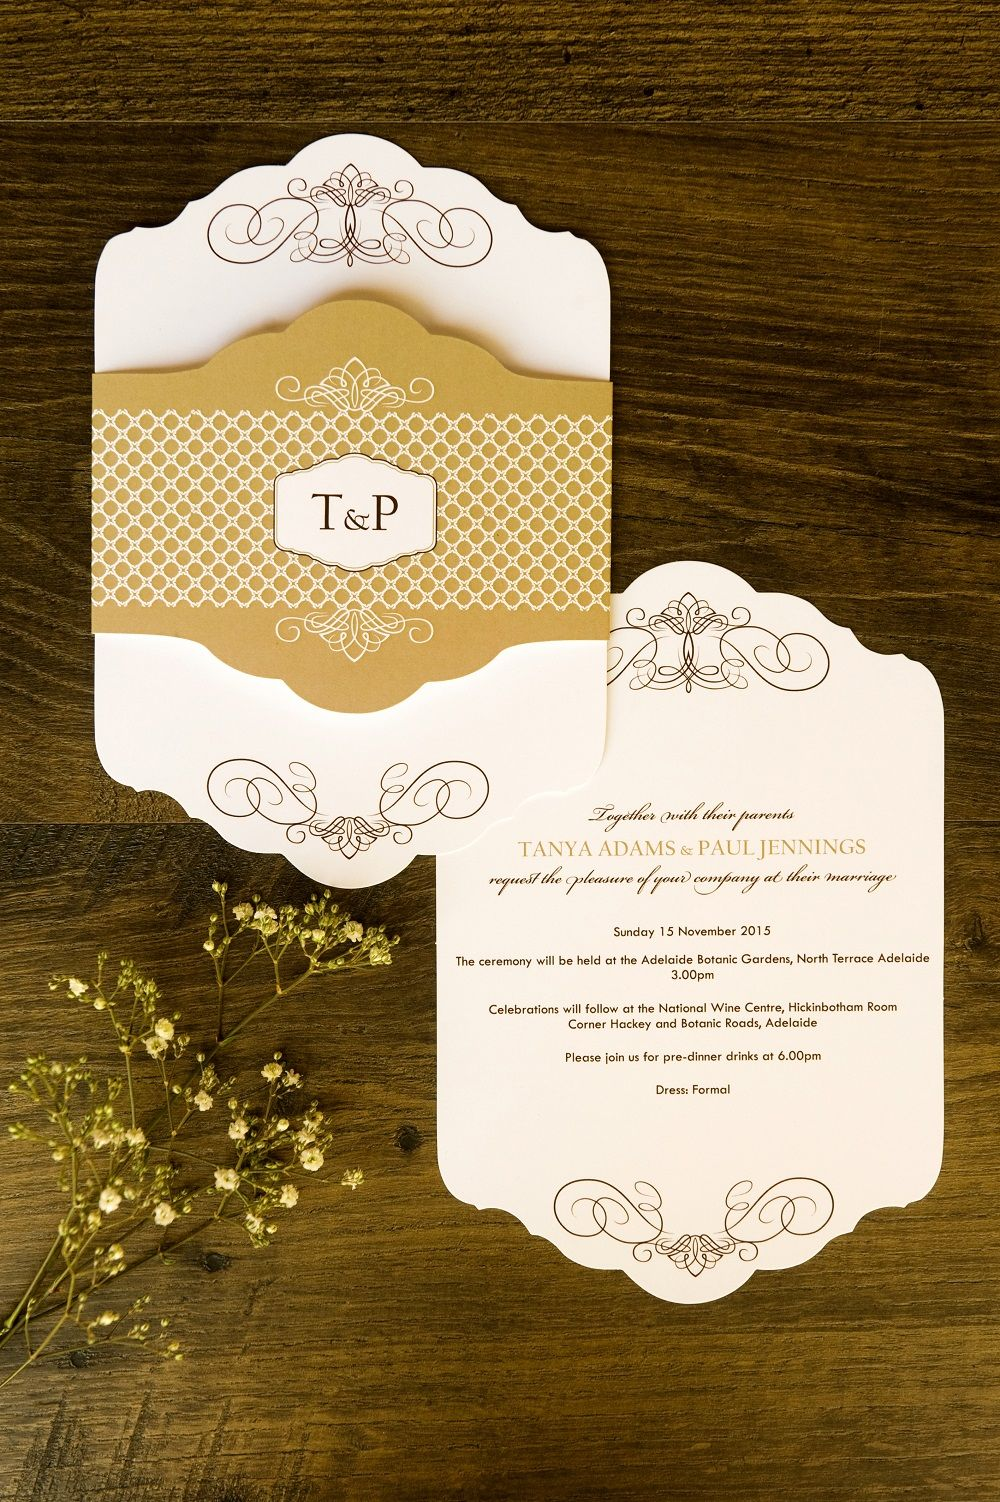 Amazing And Unique Invitation Ornate Shape With Ornate Belly Band